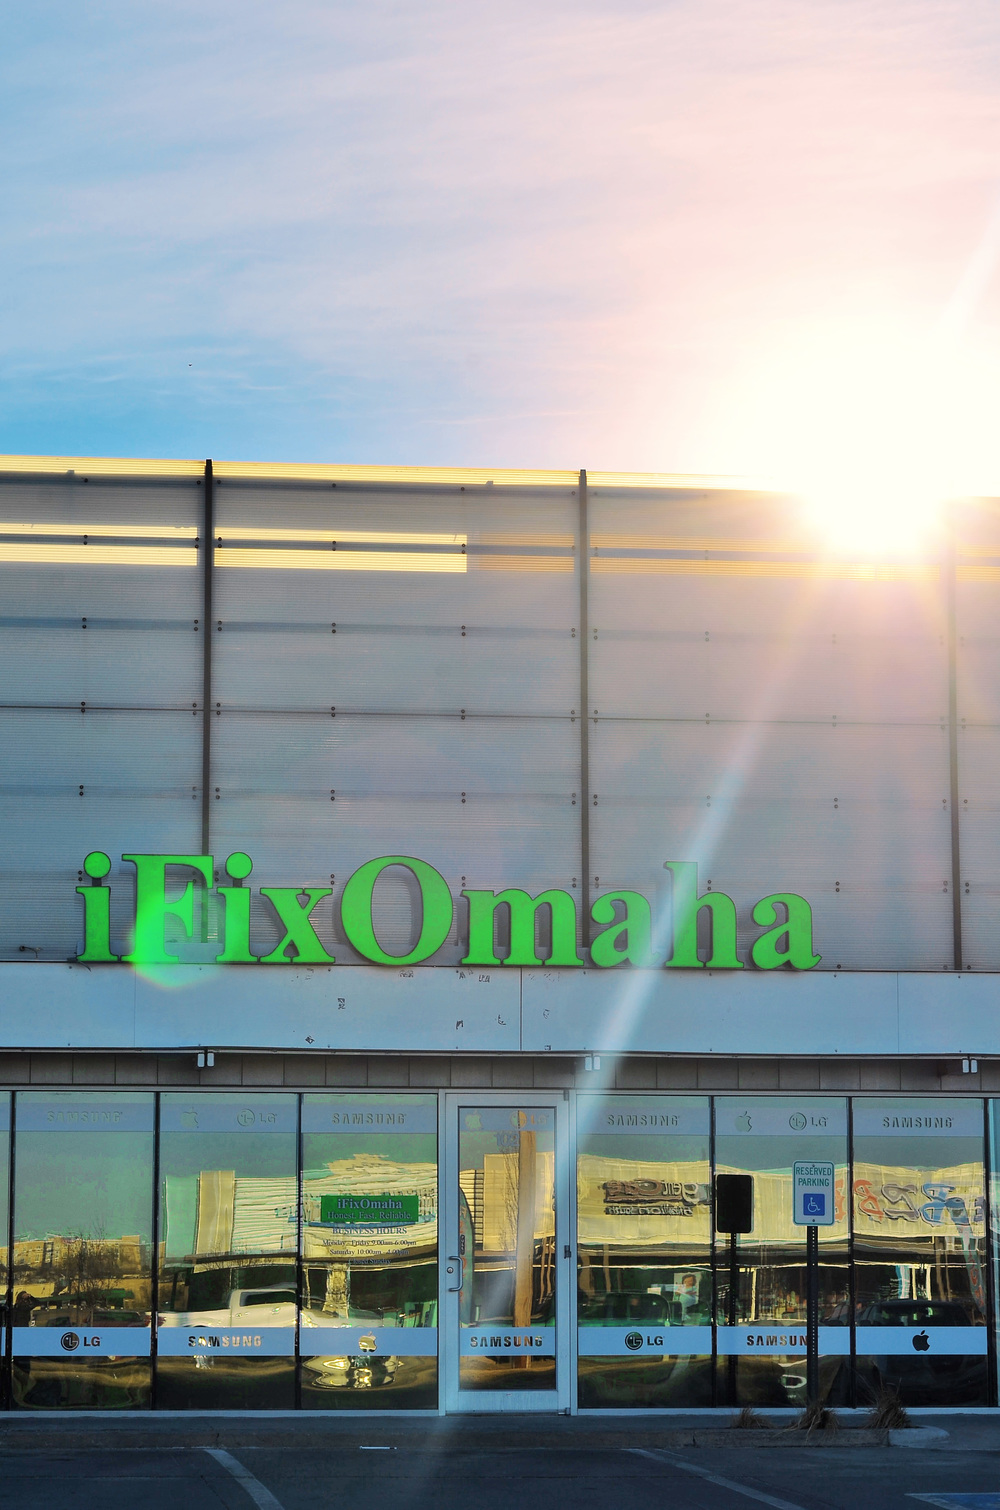 A new dawn for iFixOmaha